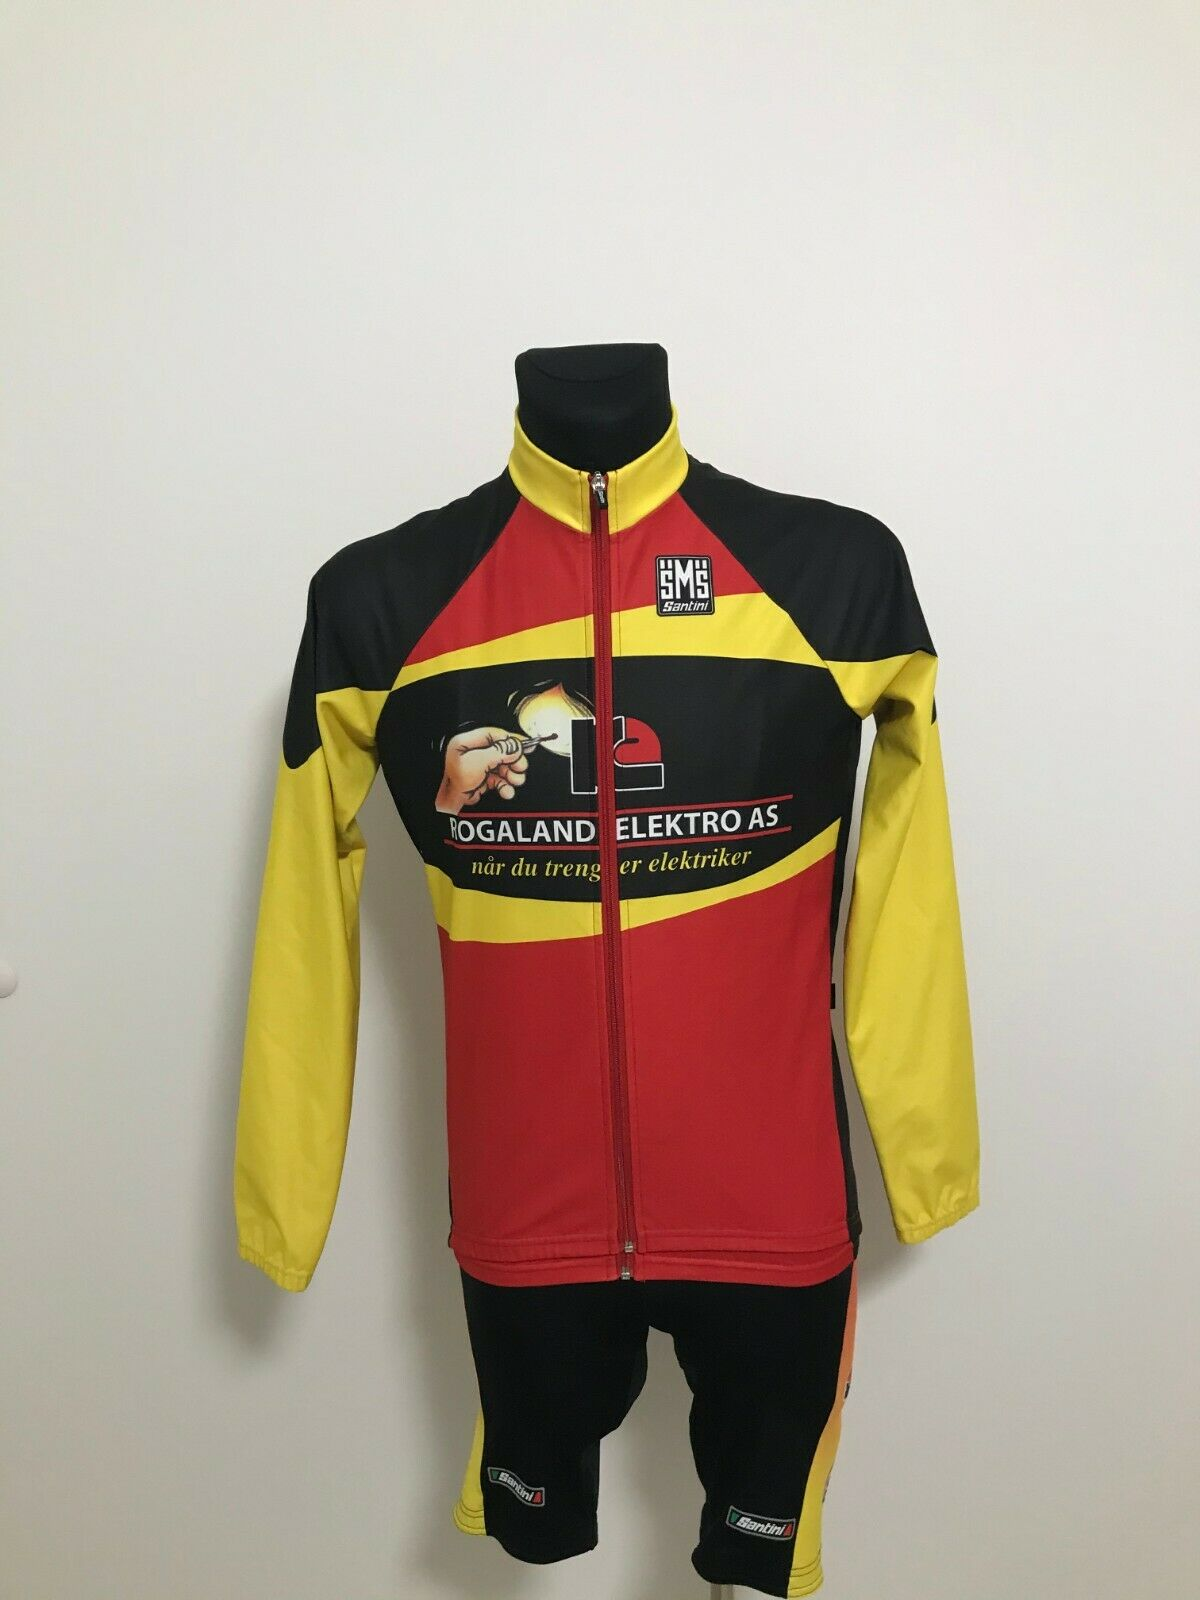 Santini Cycling Kit Bibs Shirt and Jacket Gore WindStopper Größe L